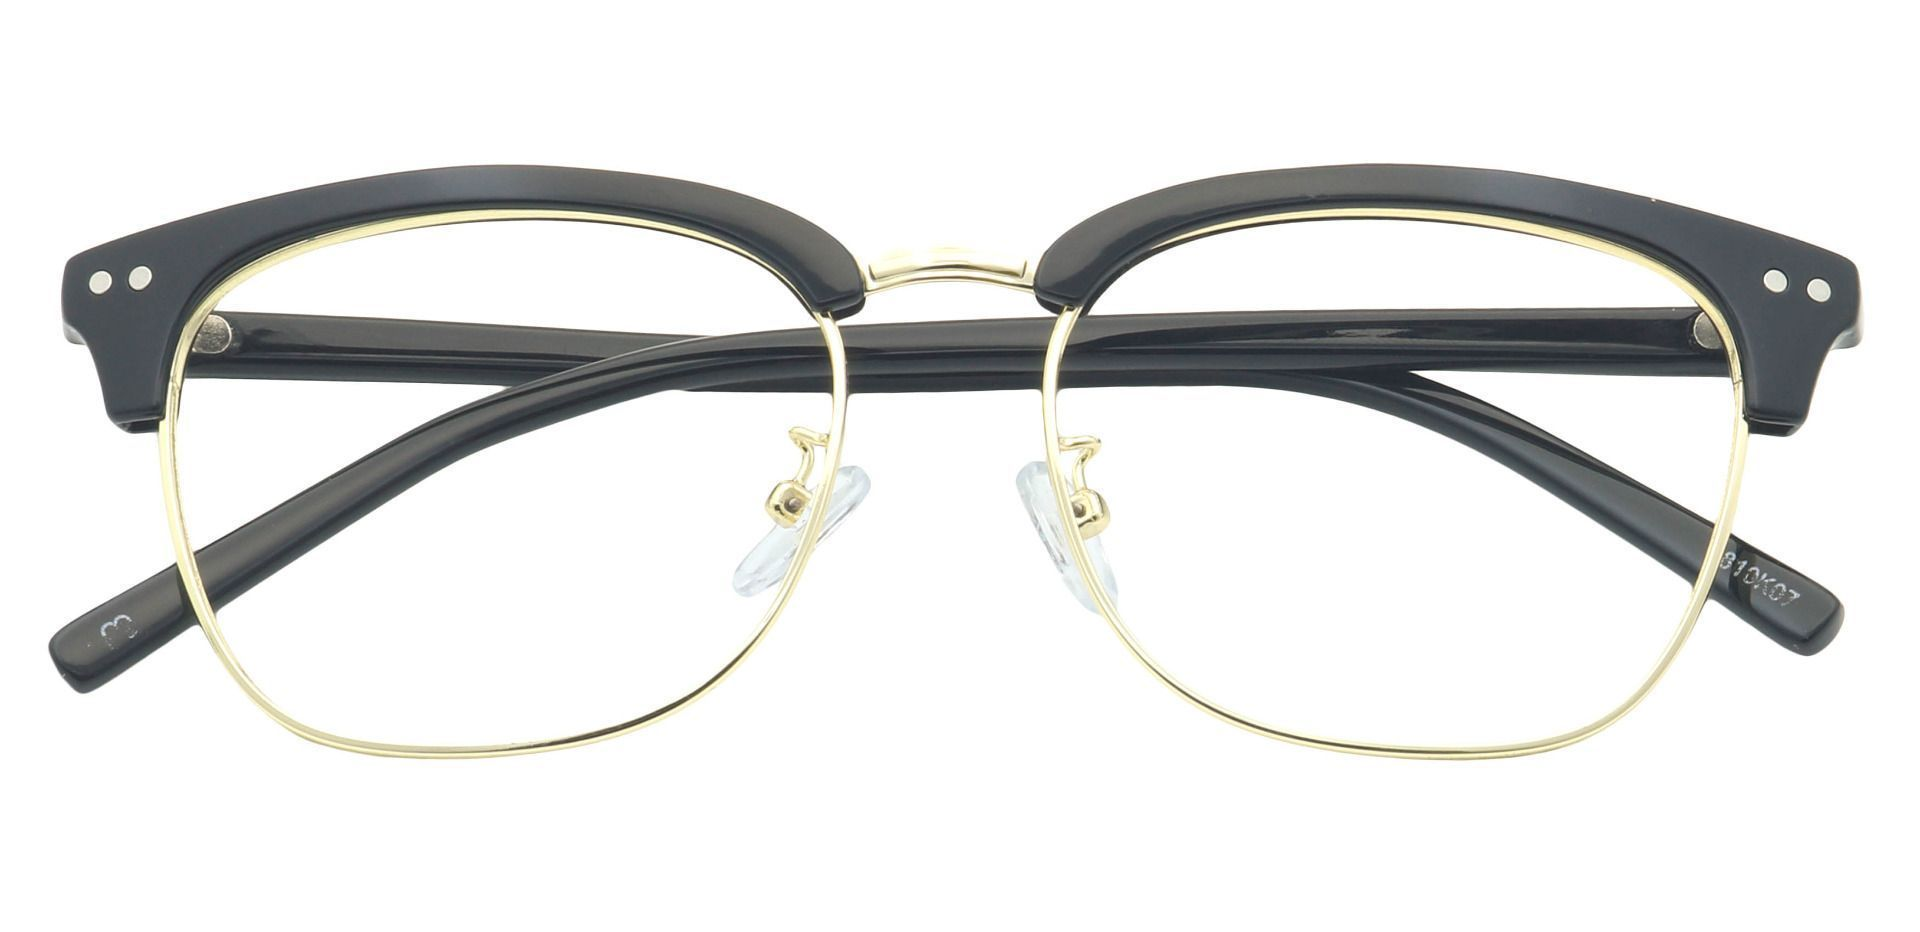 Kell Browline Reading Glasses - Black